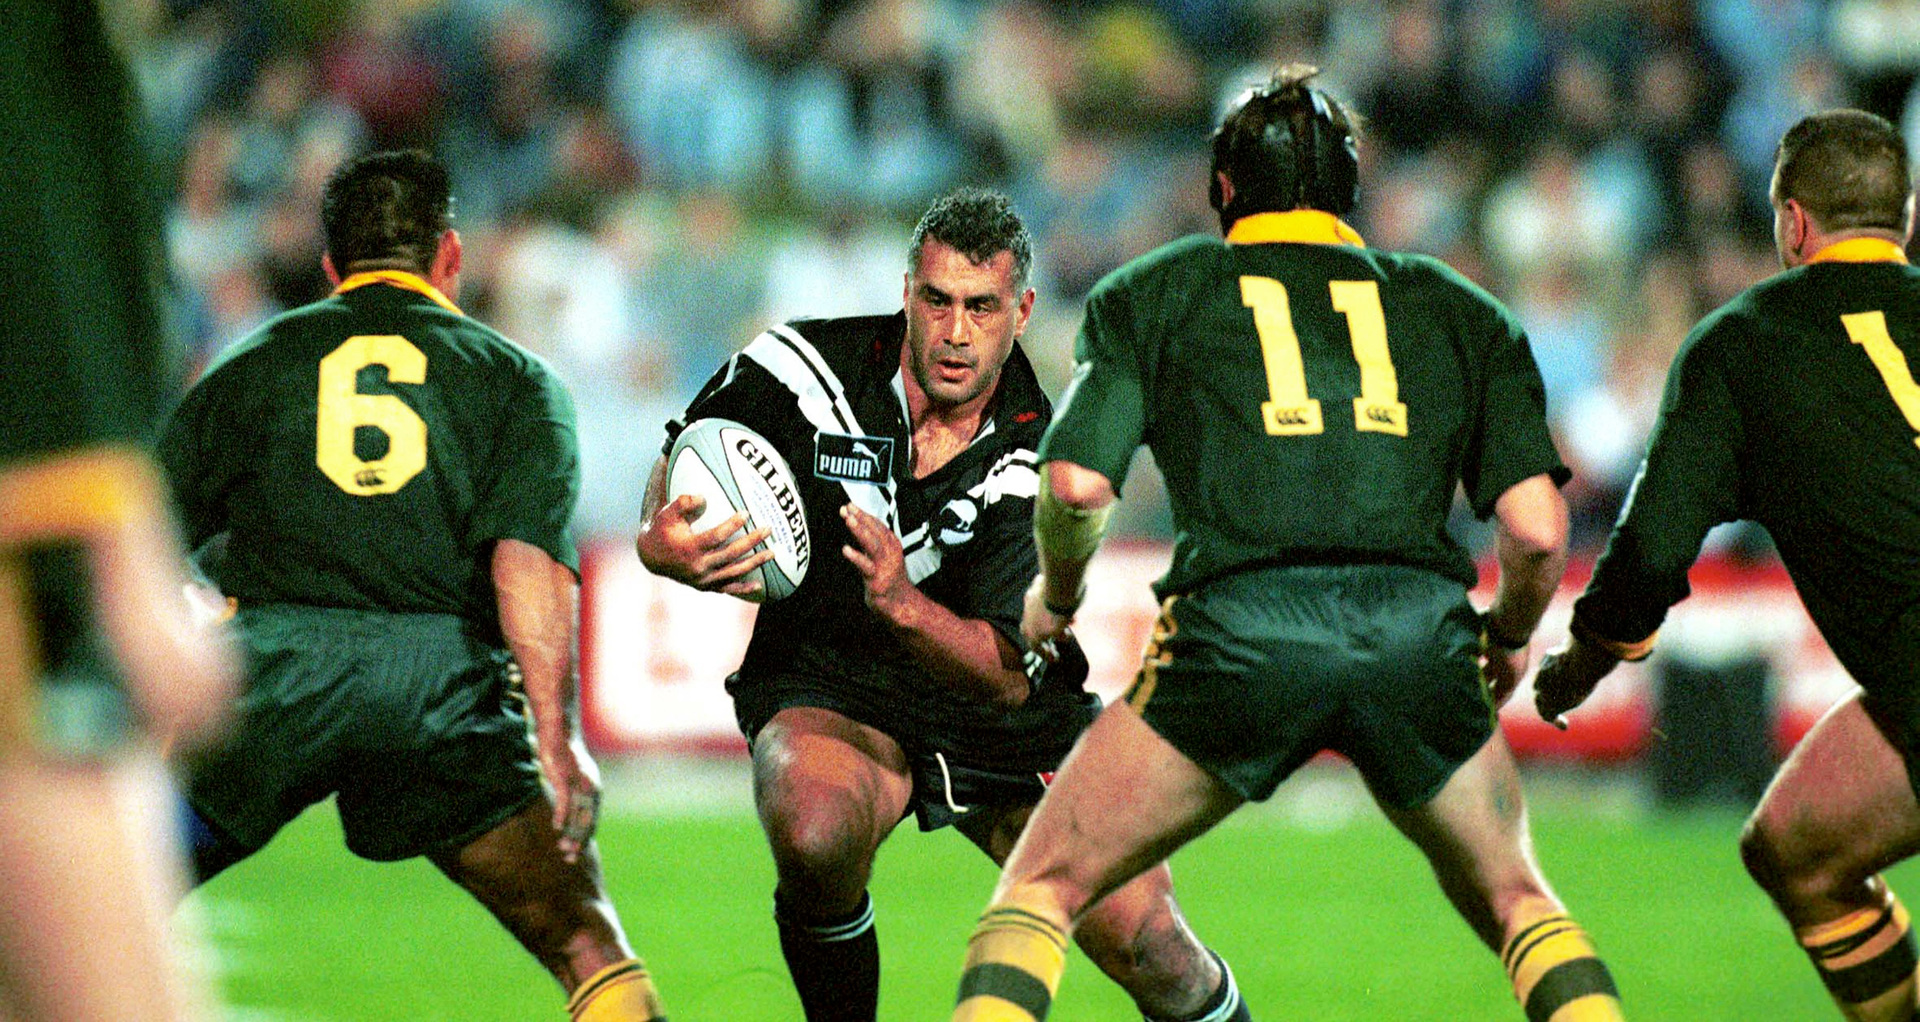 Rugby league: Former Kiwis prop Quentin Pongia passes away after cancer battle